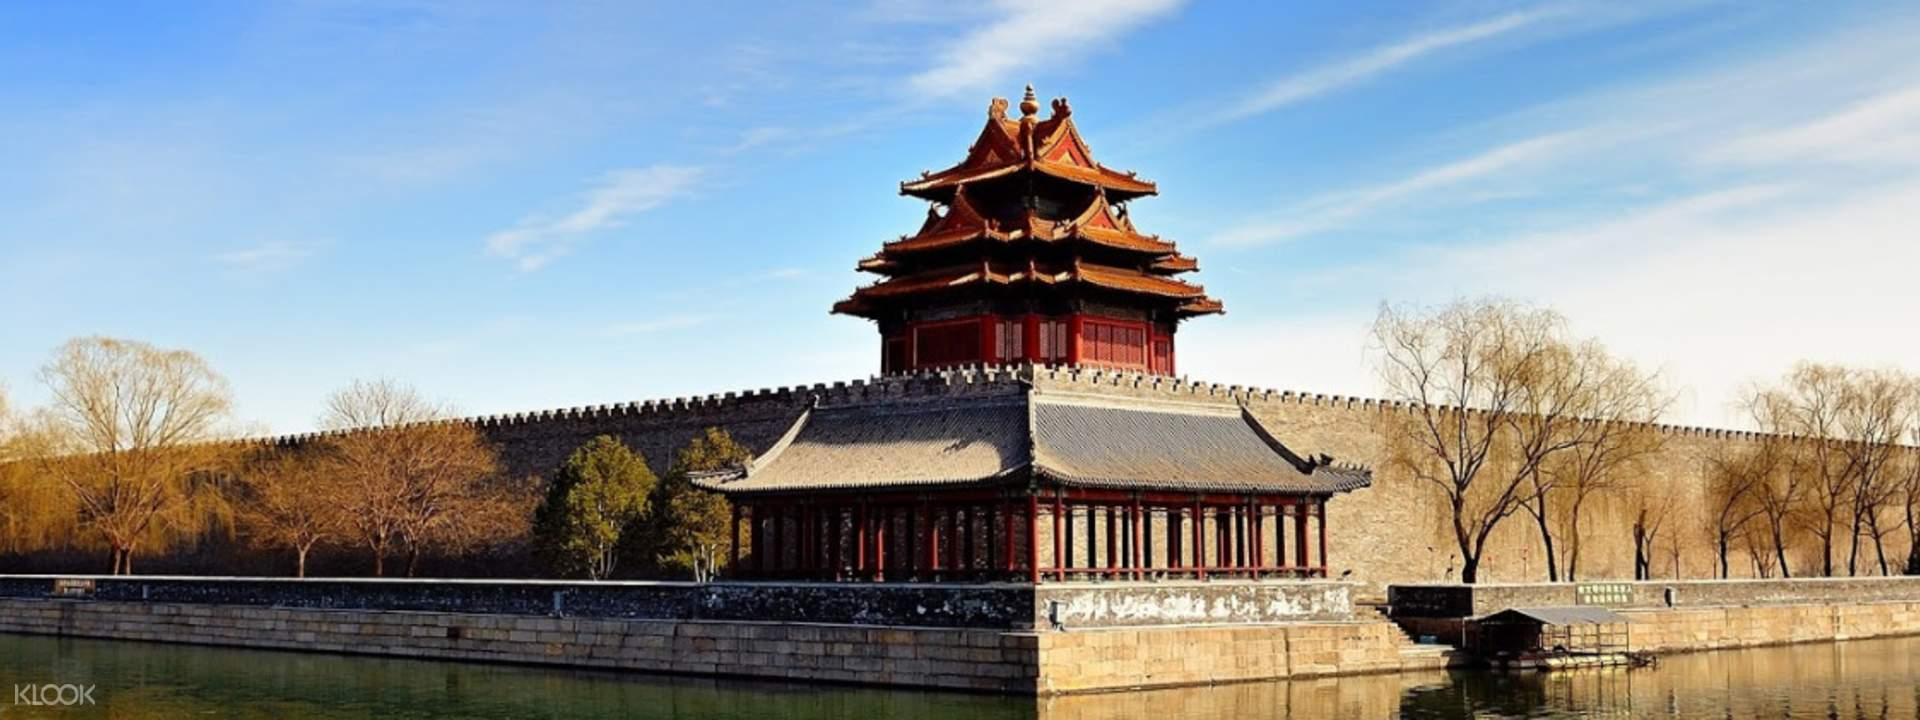 Beijing Forbidden City, Summer Palace, and the Temple of